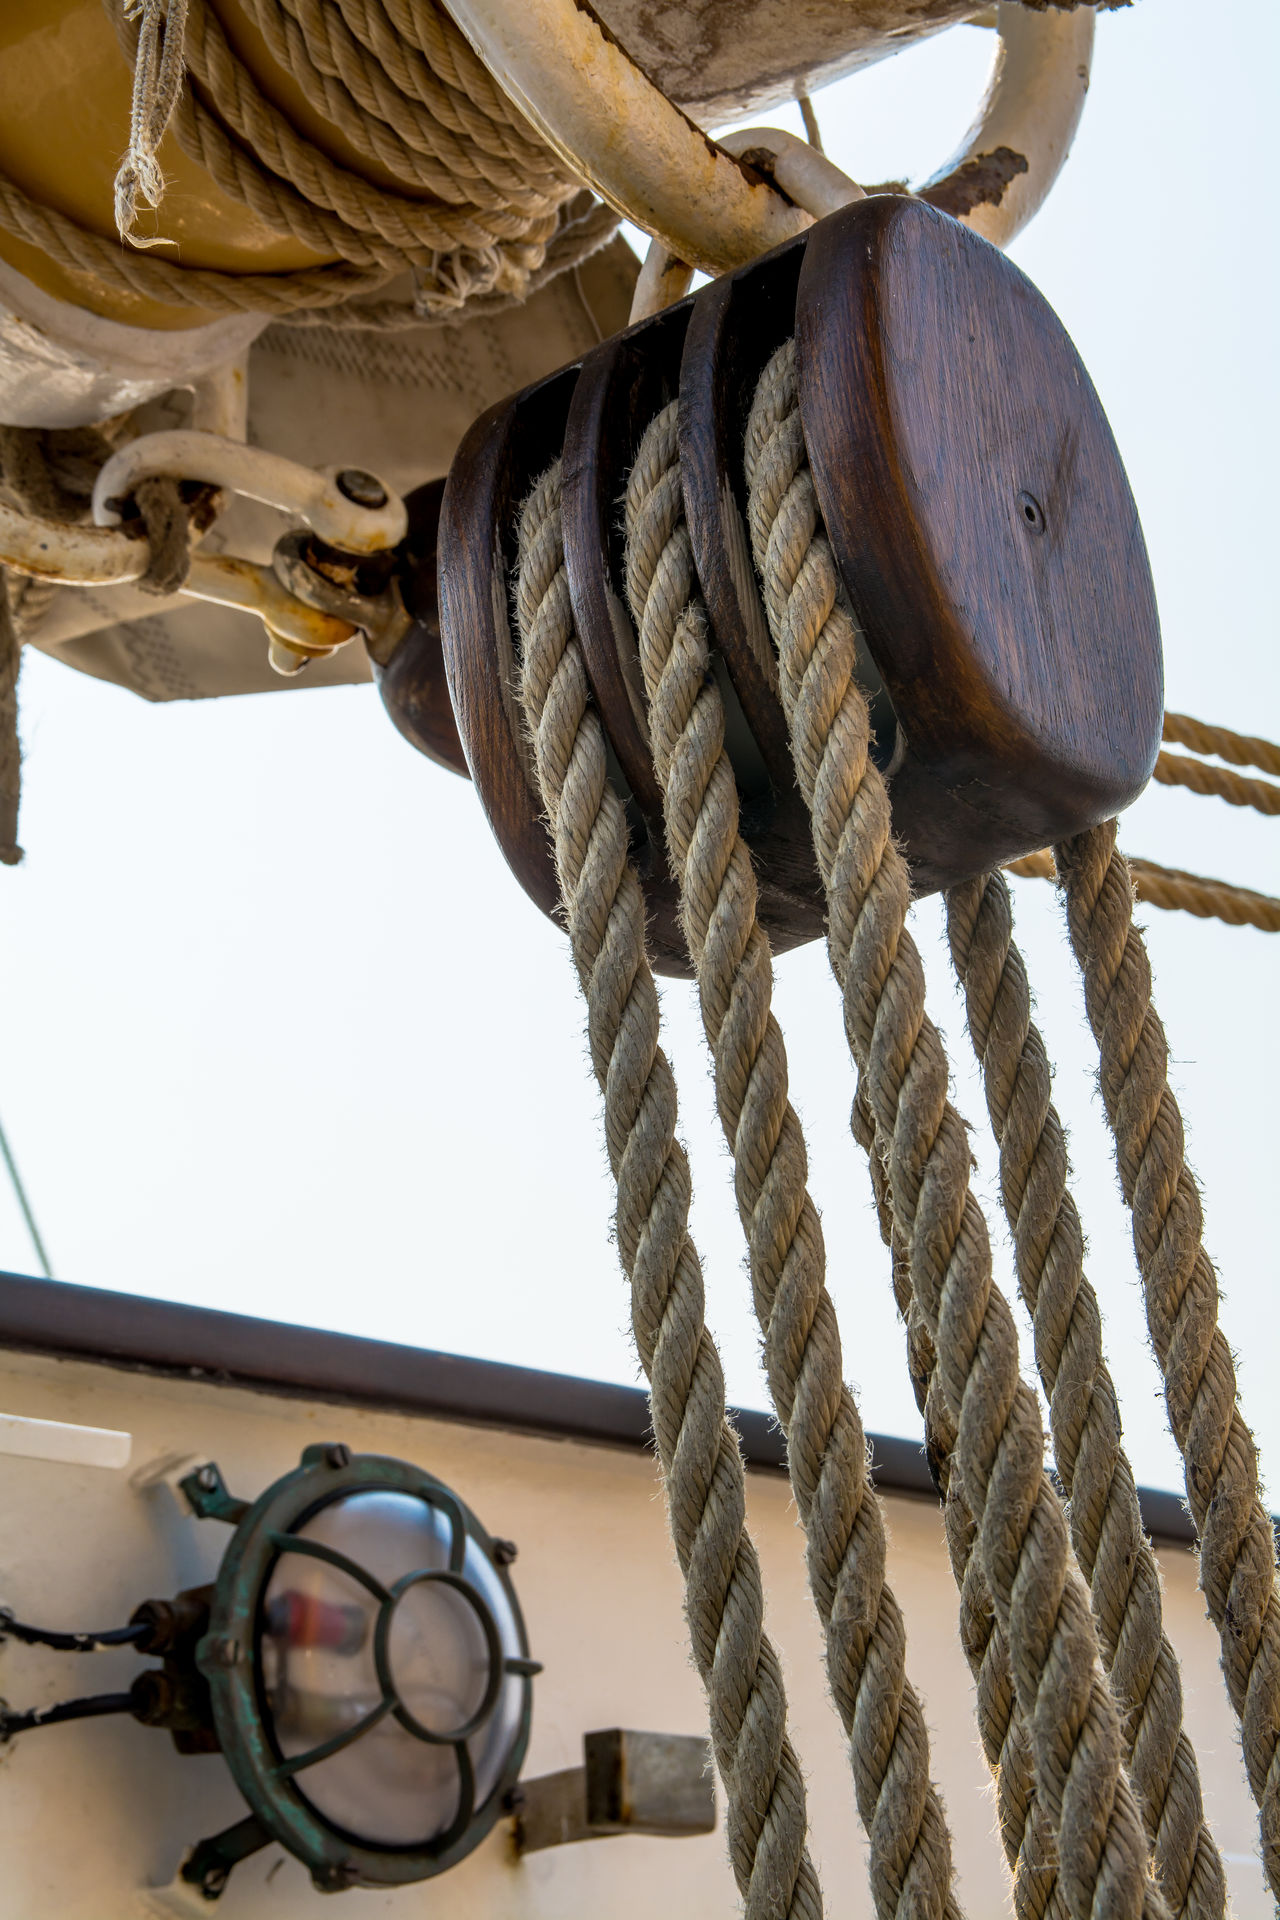 Architectural Feature Close-up Day Detail Light Lines Low Angle View Nautical Nautical Vessel No People Outdoors Part Of Perspective Pulley Ropes Sailing Ship Sails Sky Sunny Tall Ship Tool Triple Pulley Wooden